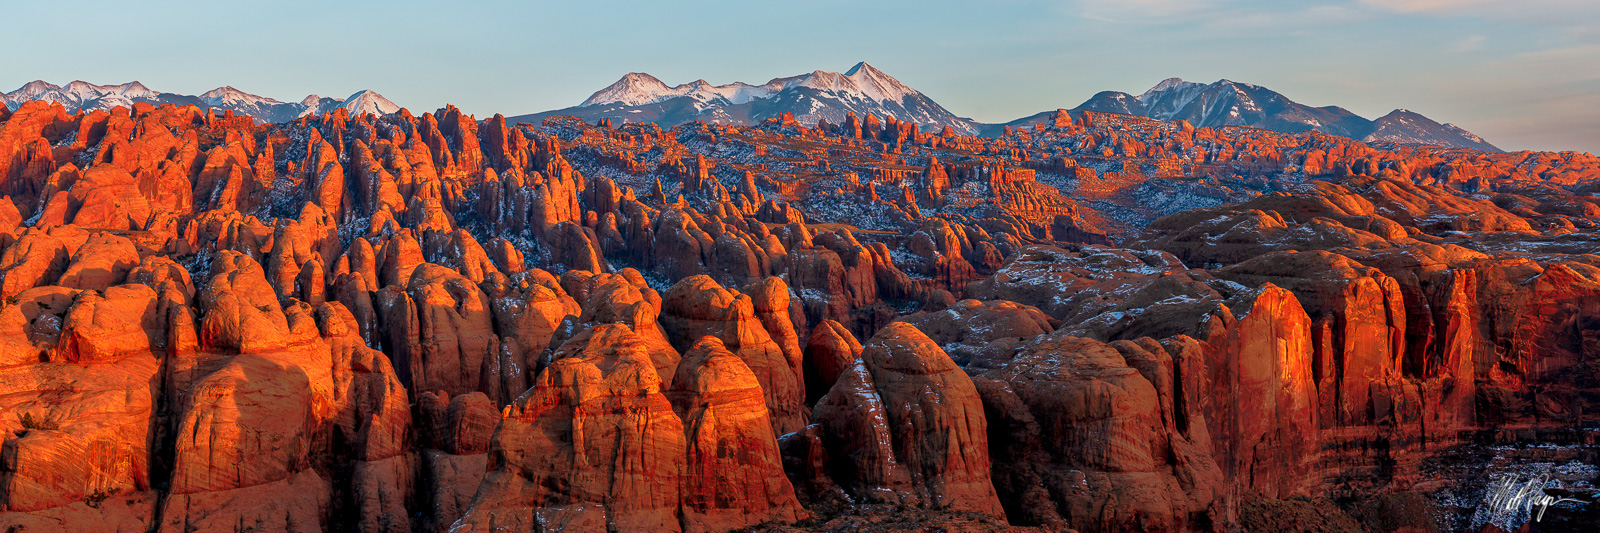 Glow, Grand Scenic, La Sal Mountains, Moab, Panorama, Panoramic, Sandstone, Sunset, Utah, Winter, landscape photography, photo